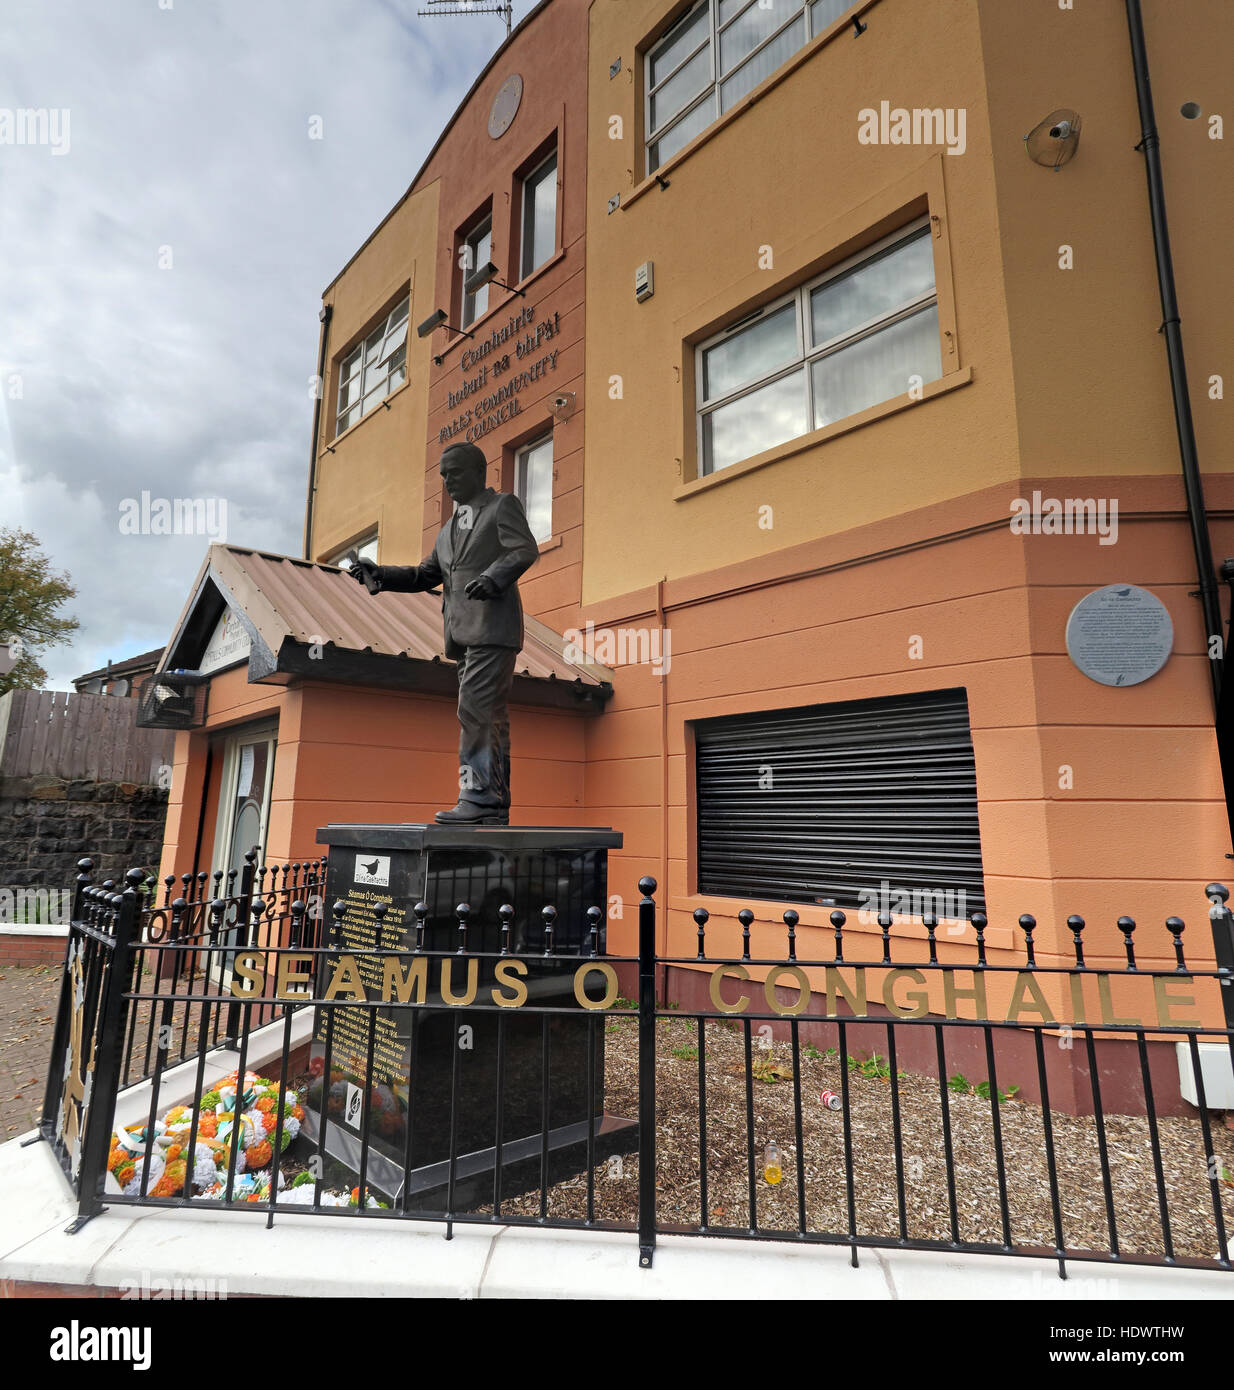 Road,painting,graffiti,resistance,IRA,peace,Northern Ireland,NI,UK,St,street,Eire,Irish,Republic,Irish Republic,conflict,Irish Republican Army,Political Change,Easter Rising,James Connolly,Seamus Ó Conghaile,outside,society,HQ,office,Erected,March,2016,James Connolly statue,bronze,GoTonySmith,@HotpixUK,Tony,Smith,UK,GB,Great,Britain,United,Kingdom,Irish,British,Ireland,problem,with,problem with,issue with,NI,Northern,Northern Ireland,Belfast,City,Centre,Art,Artists,the,troubles,The Troubles,Good Friday Agreement,Peace,honour,painting,wall,walls,tribute,republicanism,Fight,Justice,West,Beal,feirste,martyrs,social,tour,tourism,tourists,urban,six,counties,6,backdrop,county,Antrim,occupation,good,Friday,agreement,peace,reconciliation,IRA,terror,terrorists,genocide,catholic,community,catholics,Buy Pictures of,Buy Images Of,Images of,Stock Images,Tony Smith,United Kingdom,Great Britain,British Isles,republican cause,Belfast Catholic Community